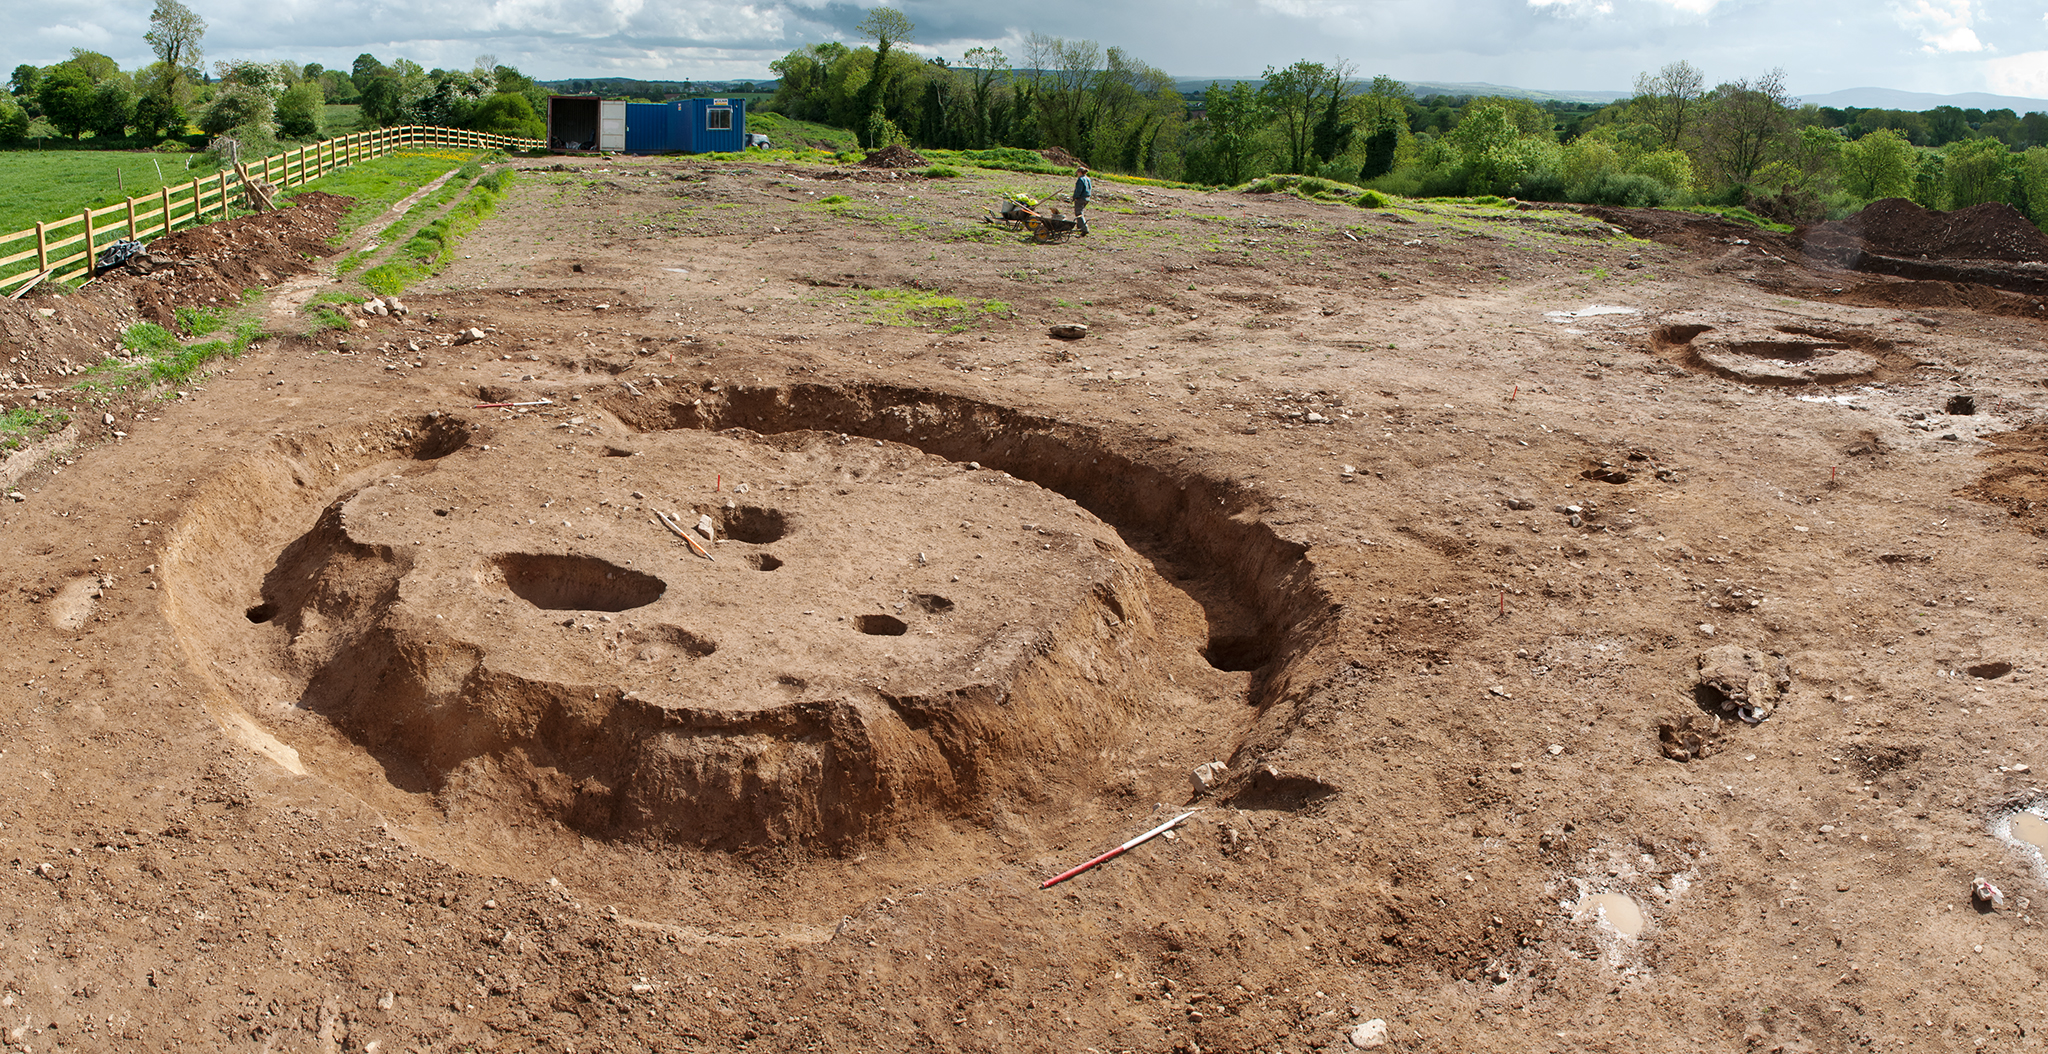 A Bronze-Age barrow excavated at Ballinacarriga on the N8 Fermoy to Mitchlestown road scheme 2007 (Eachtra/NRA/TII project)